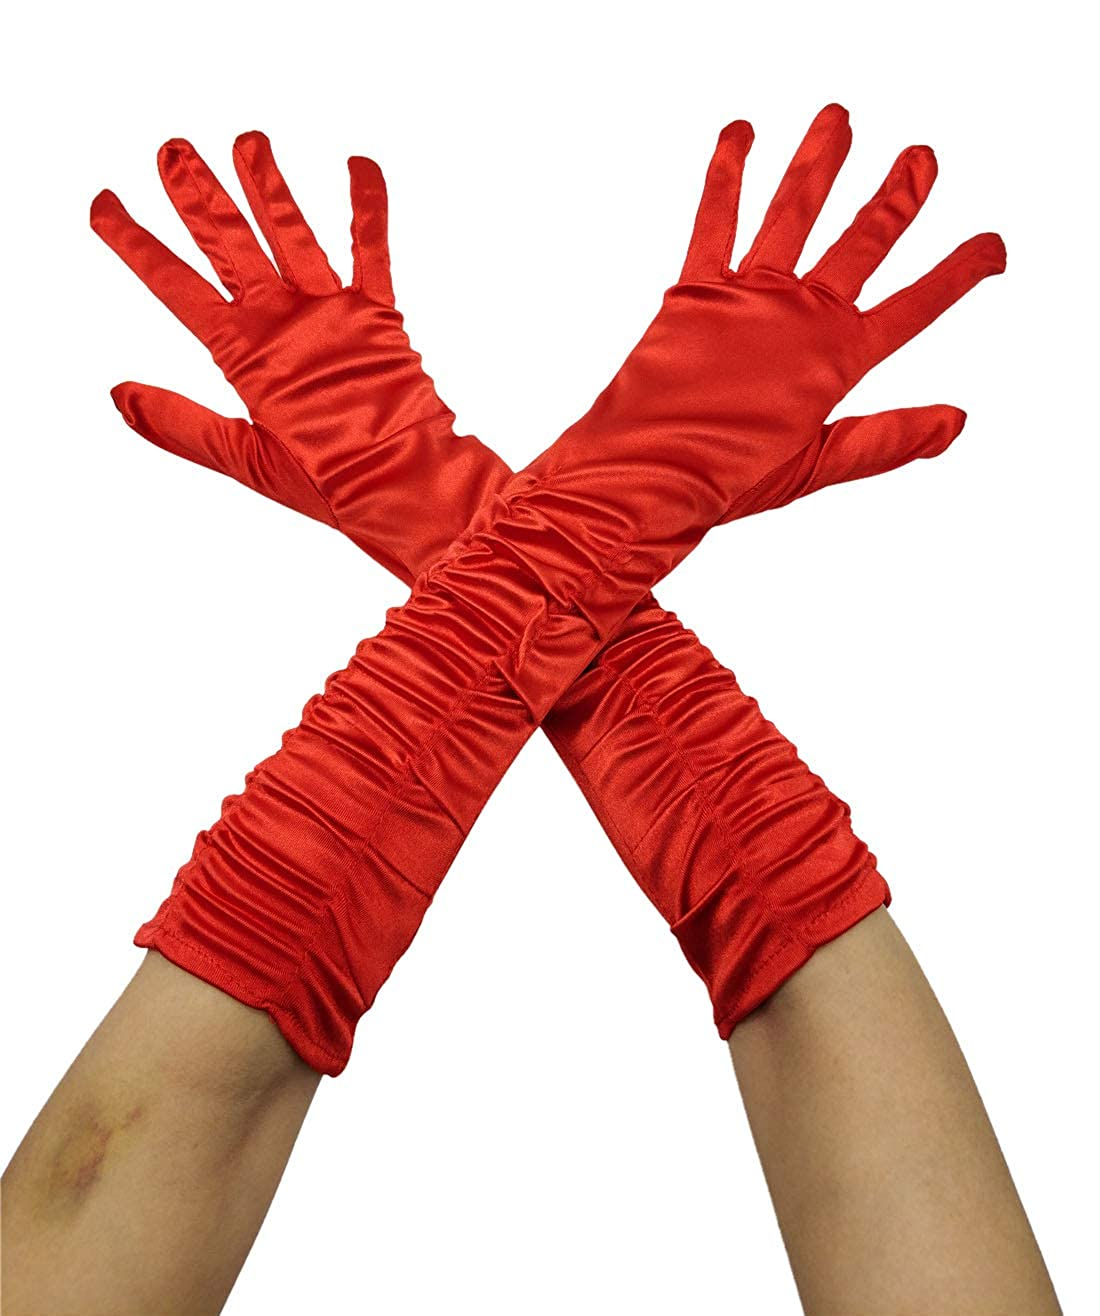 Women's Satin Elastic Ruched Elbow Length Costume Gloves (Available in 6 Colors) - DeluxeAdultCostumes.com